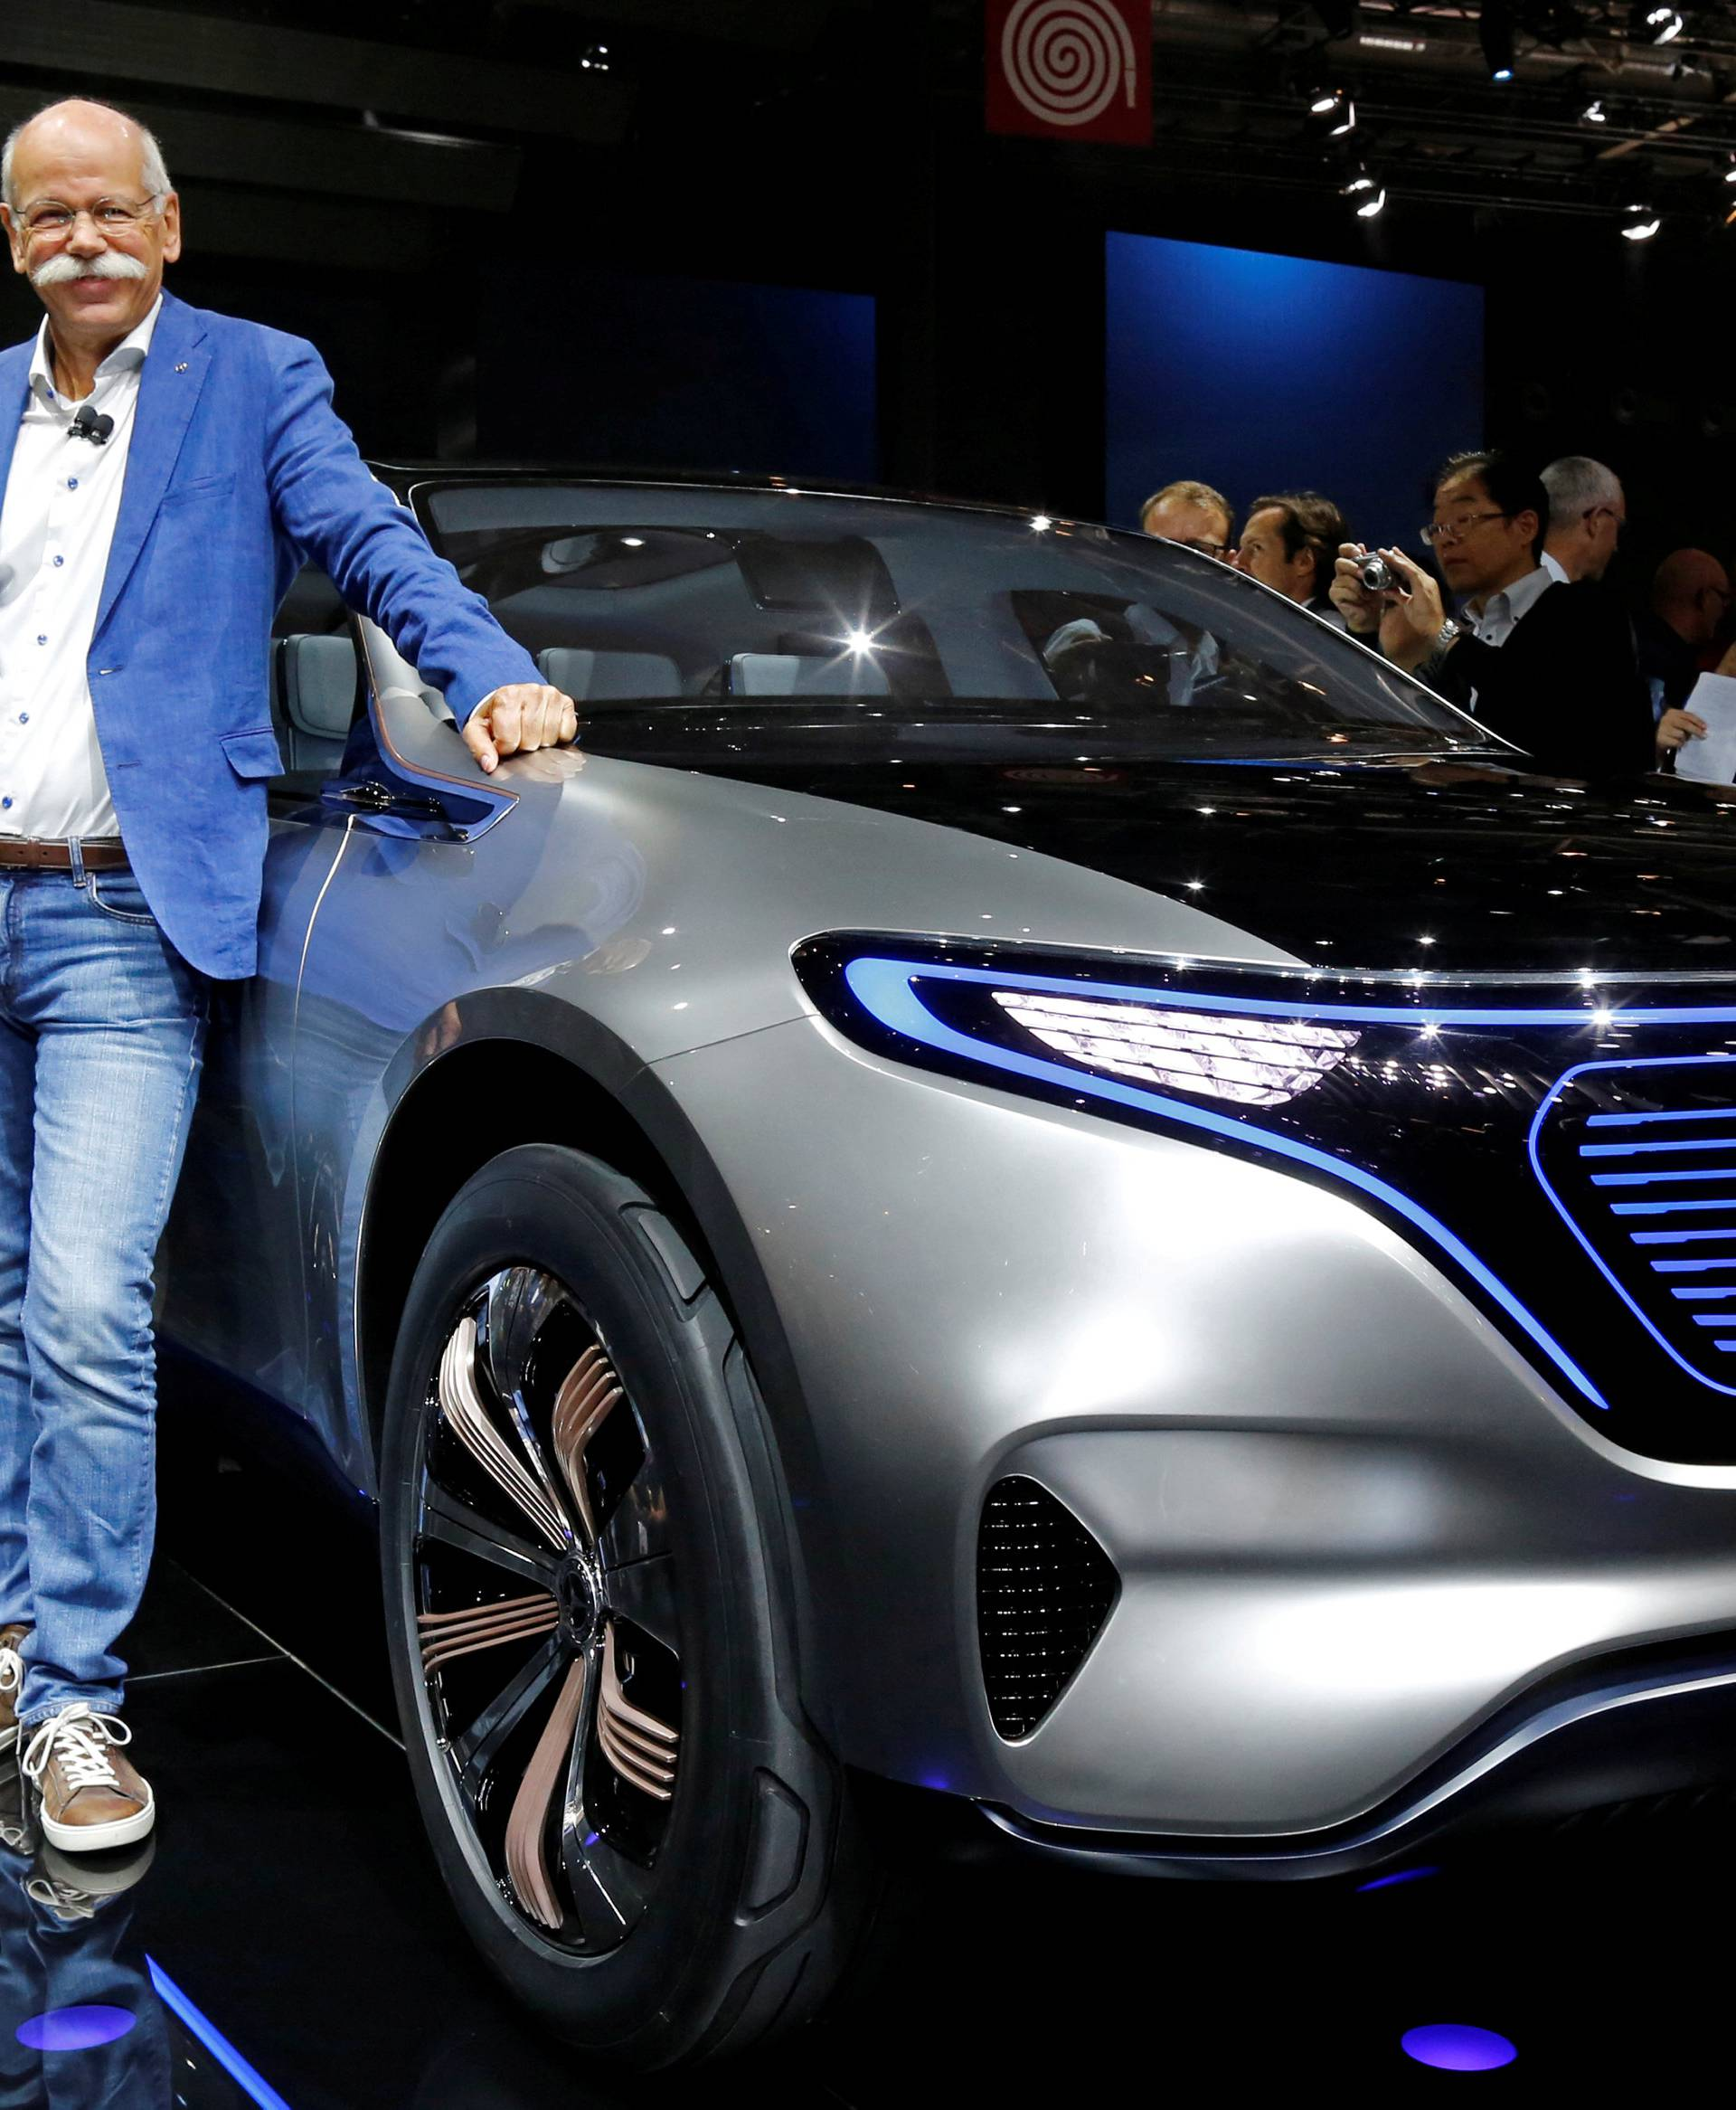 Dieter Zetsche, CEO of Daimler and Head of Mercedes-Benz, poses in front of a Mercedes EQ Electric car at the Paris auto show in Paris